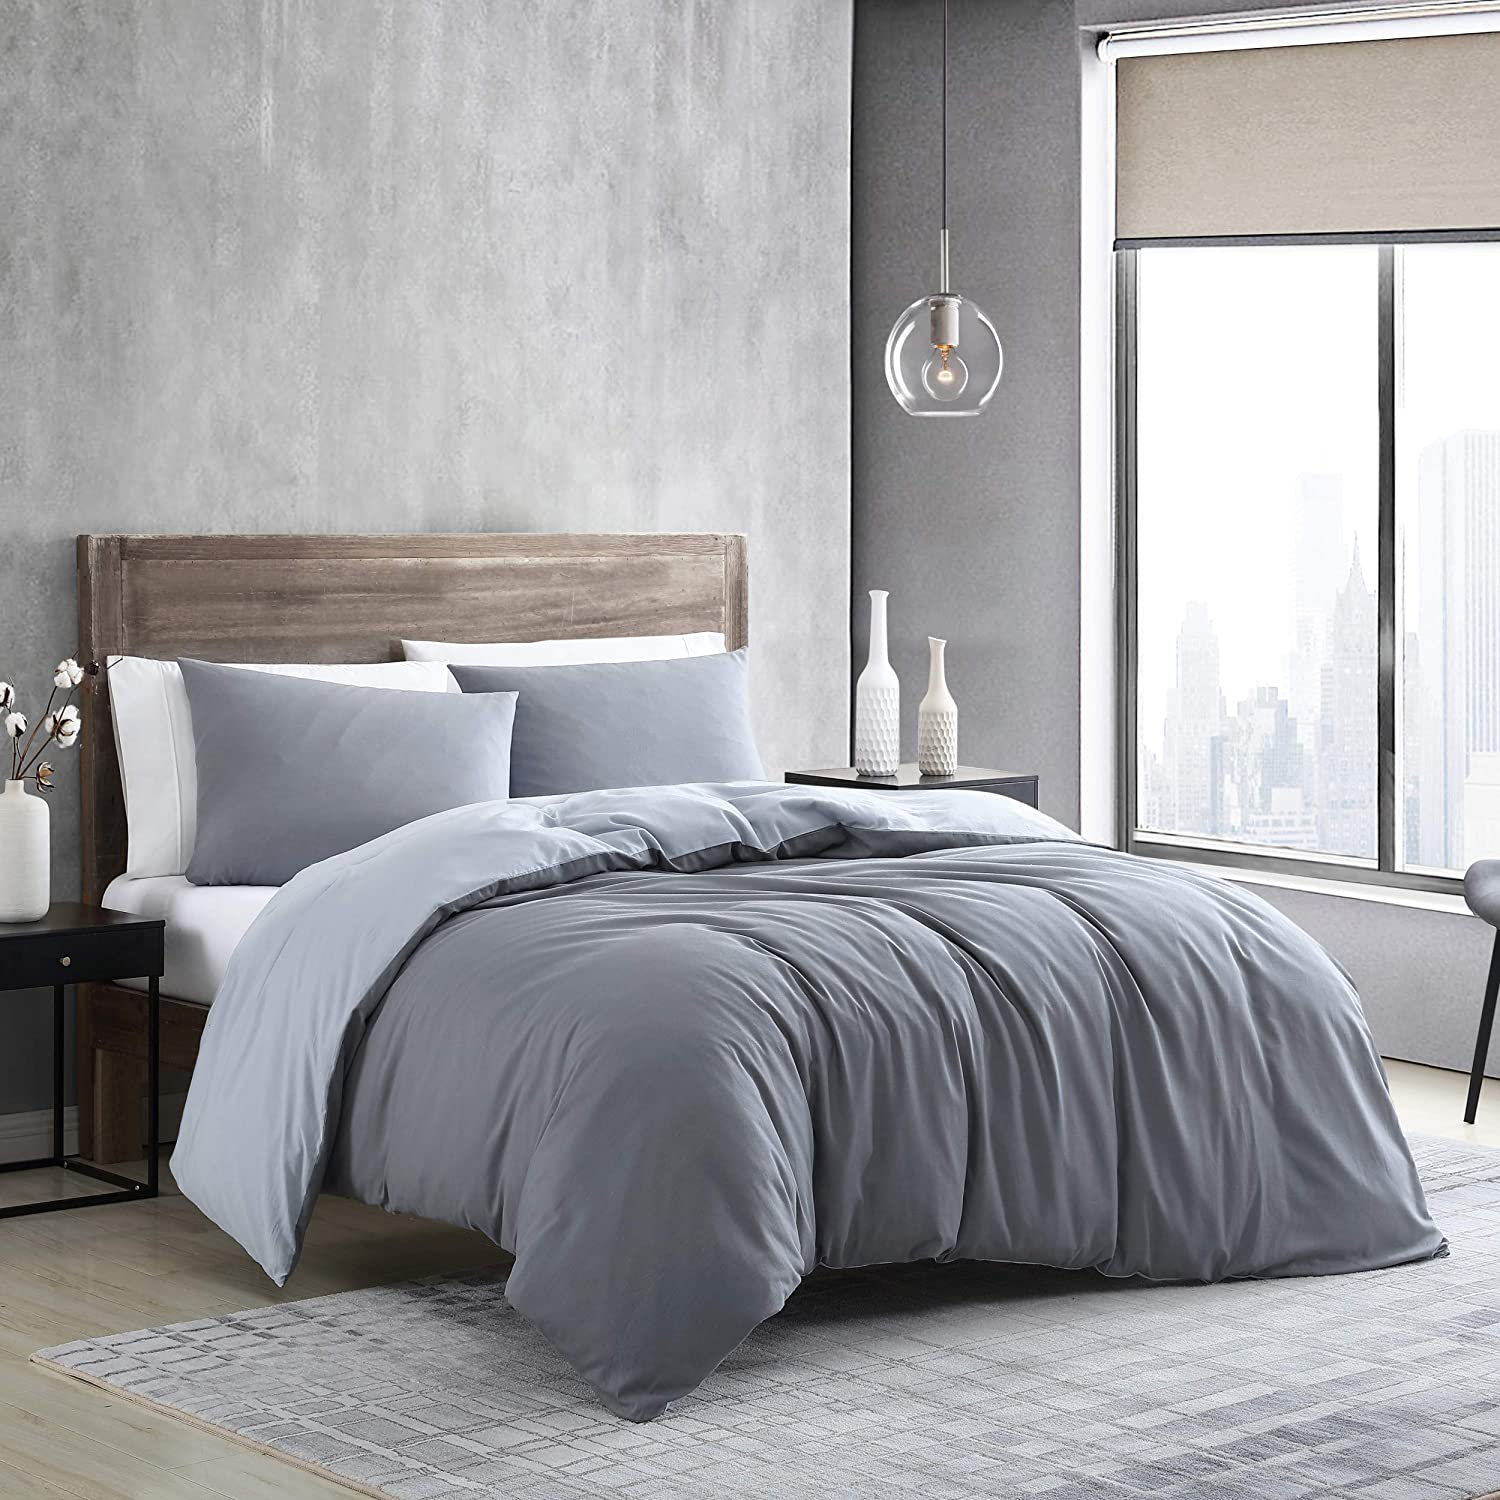 Kenneth Cole New York | Miro Collection | Duvet Cover Set - Cool and Sustainable Fabrics, Reversible Coverlet with Button Enclosures & Corner Ties, King, Smoke Grey